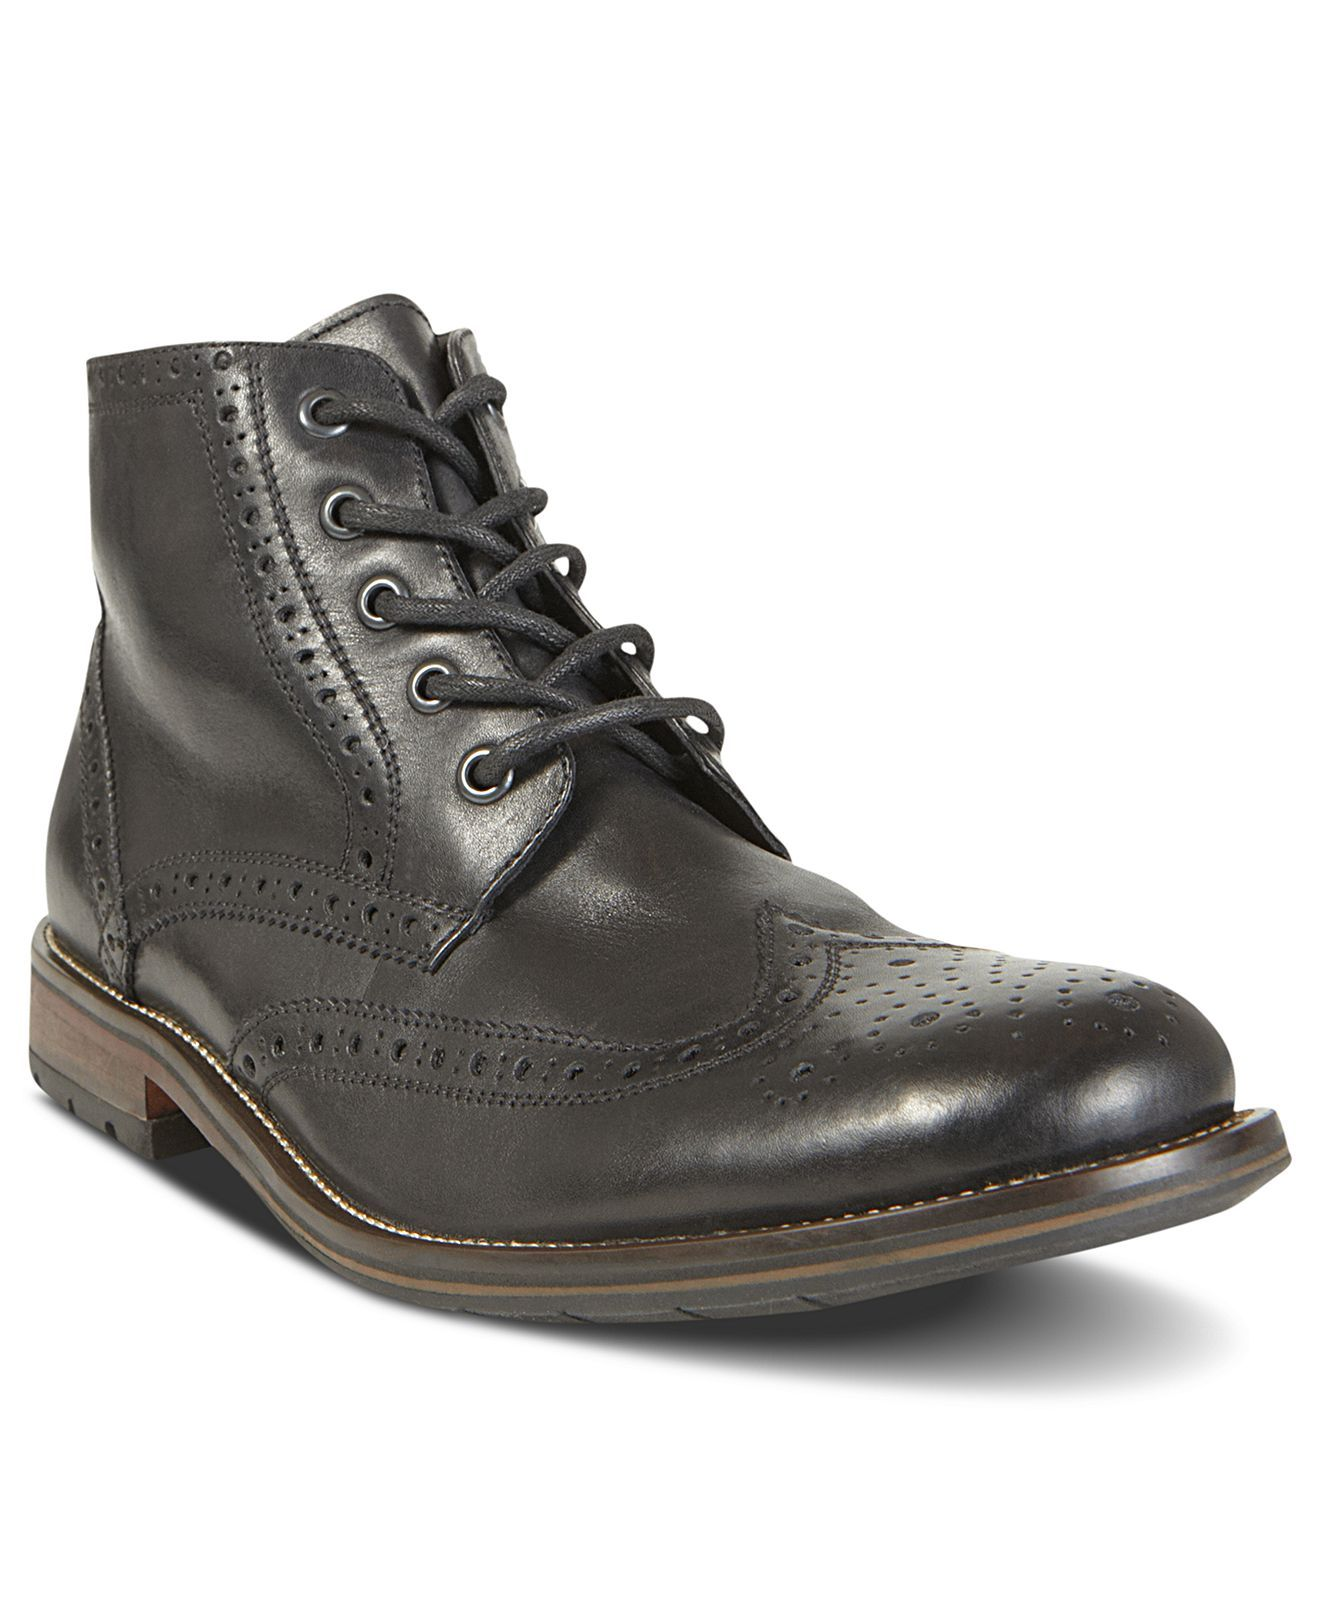 Steve Madden Shoes, Evander2 Wingtip Boots - Mens Shoes - Macy's